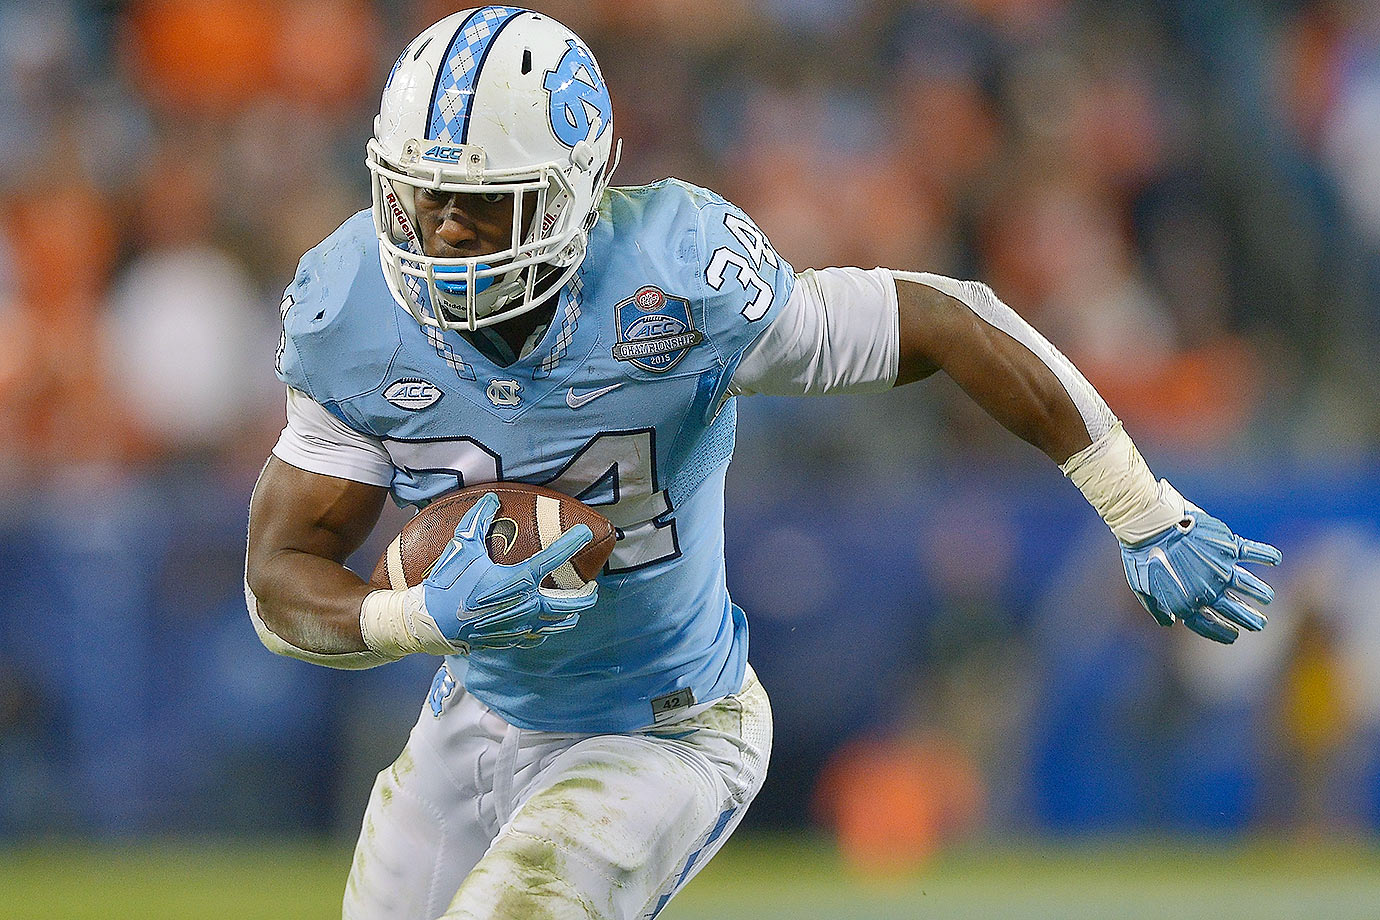 Hood quietly amassed 1,463 rushing yards in 2015 to guide the Tar Heels' ground game. Now with quarterback Marquise Williams gone, Hood is poised to become the focal point on North Carolina's offense.